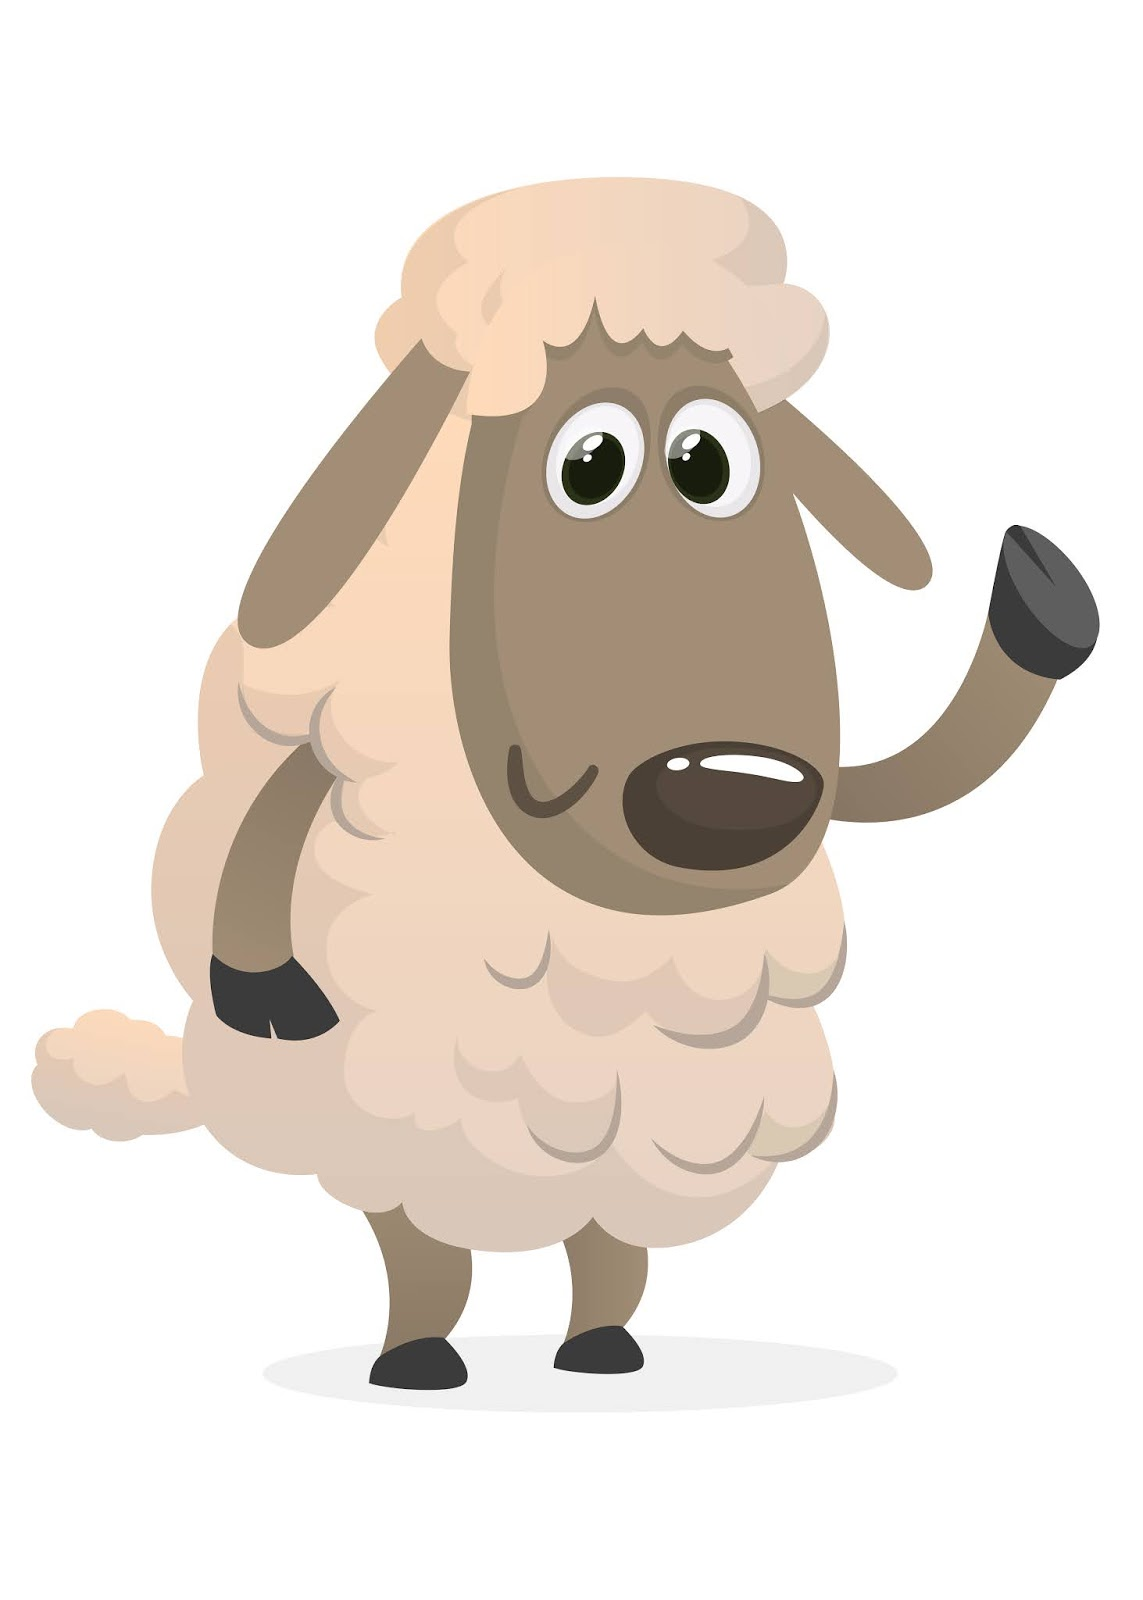 Cartoon Sheep Illustration Free Download Vector CDR, AI, EPS and PNG Formats